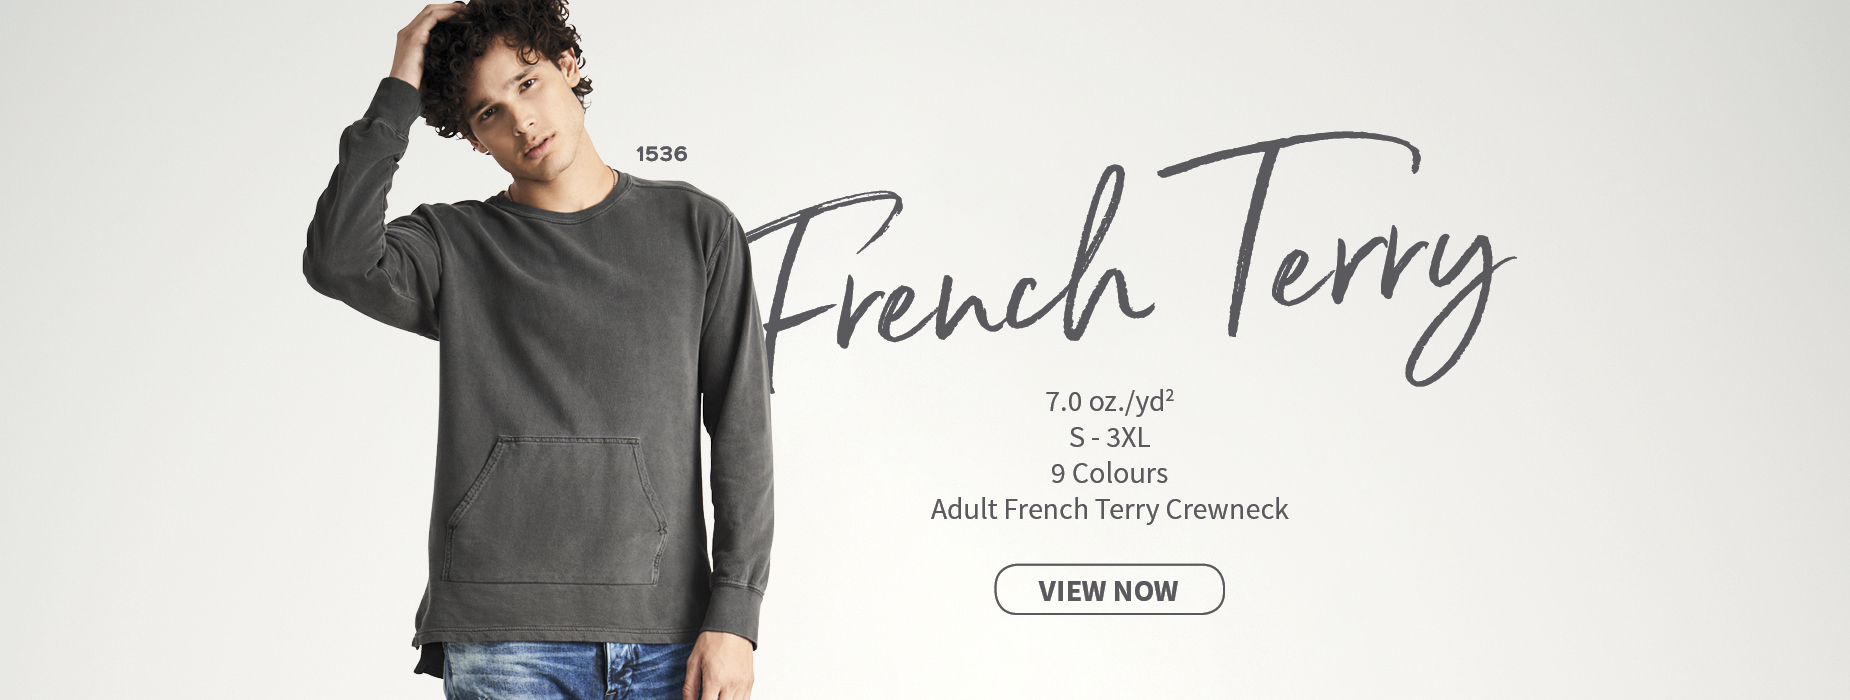 View now 1536 Adult French Terry Crewneck